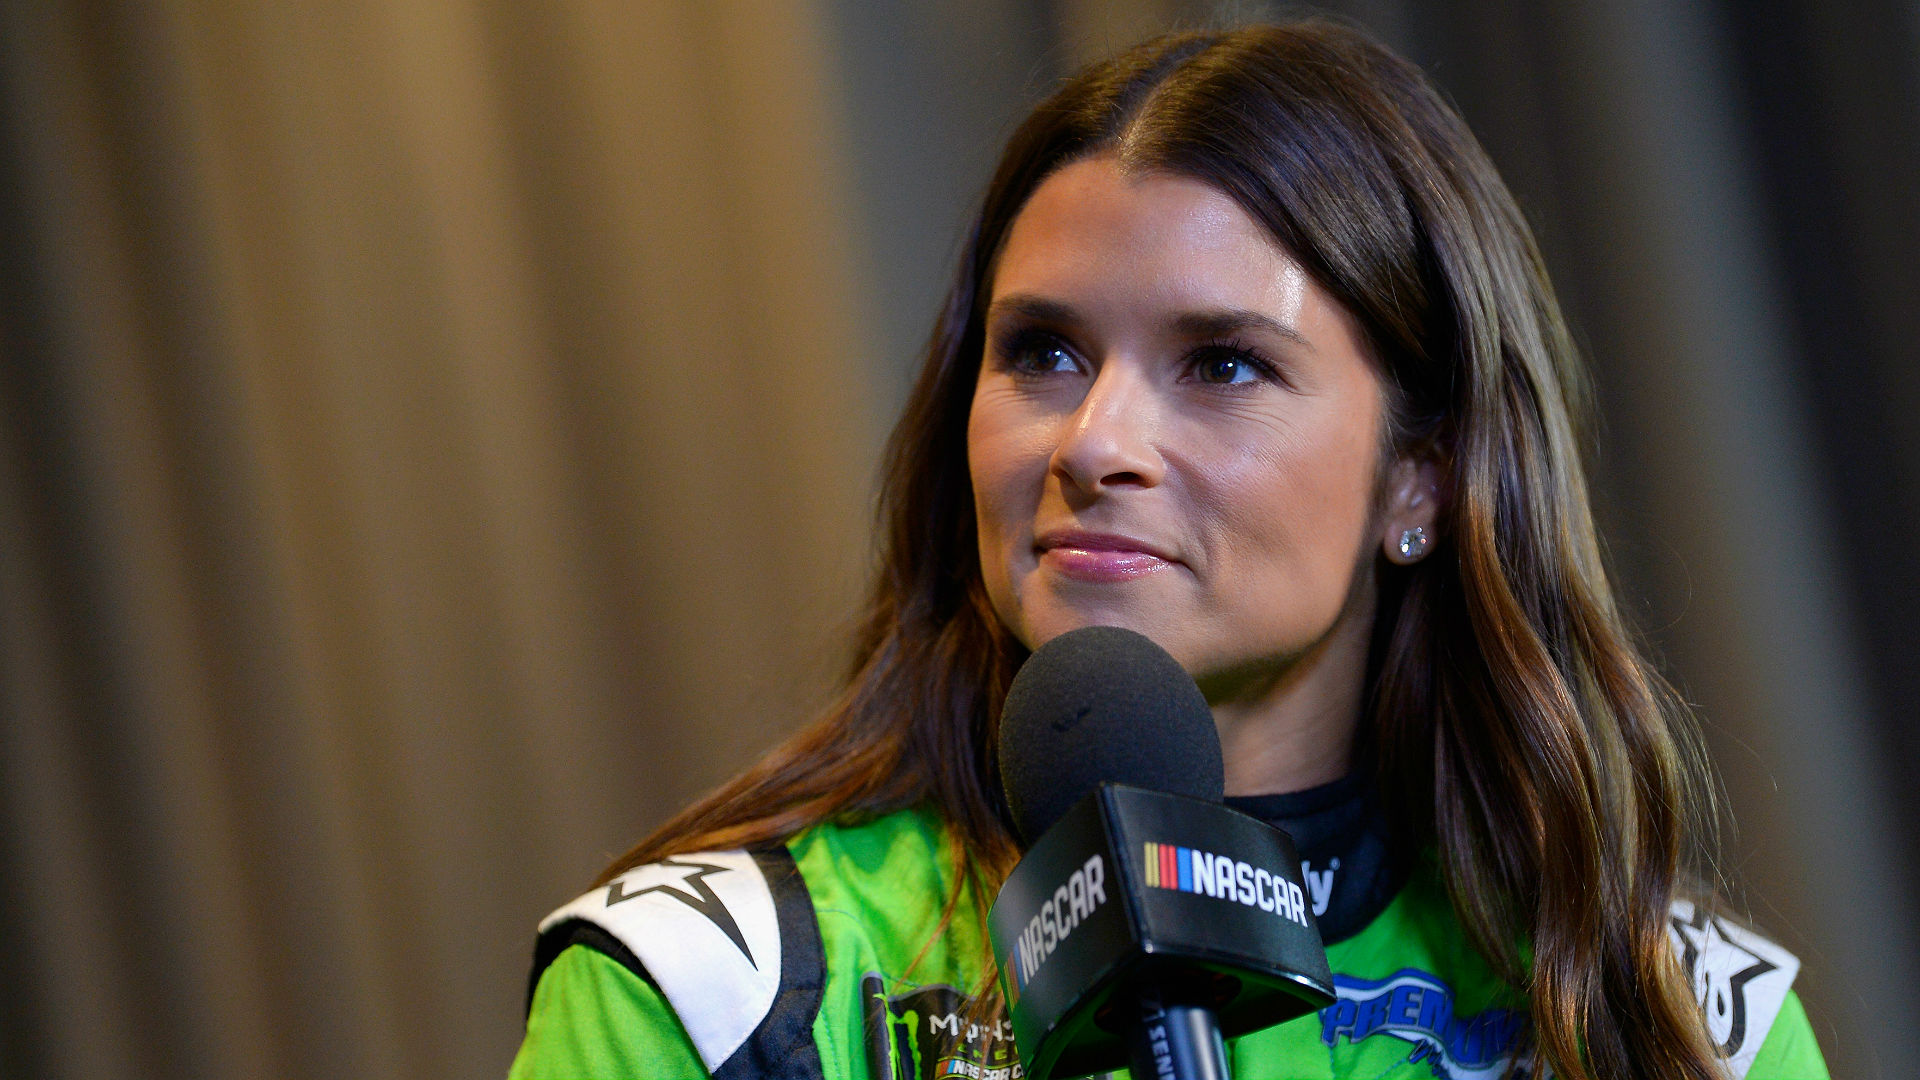 Danica Patrick posts beach picture with Aaron Rodgers before Daytona 500